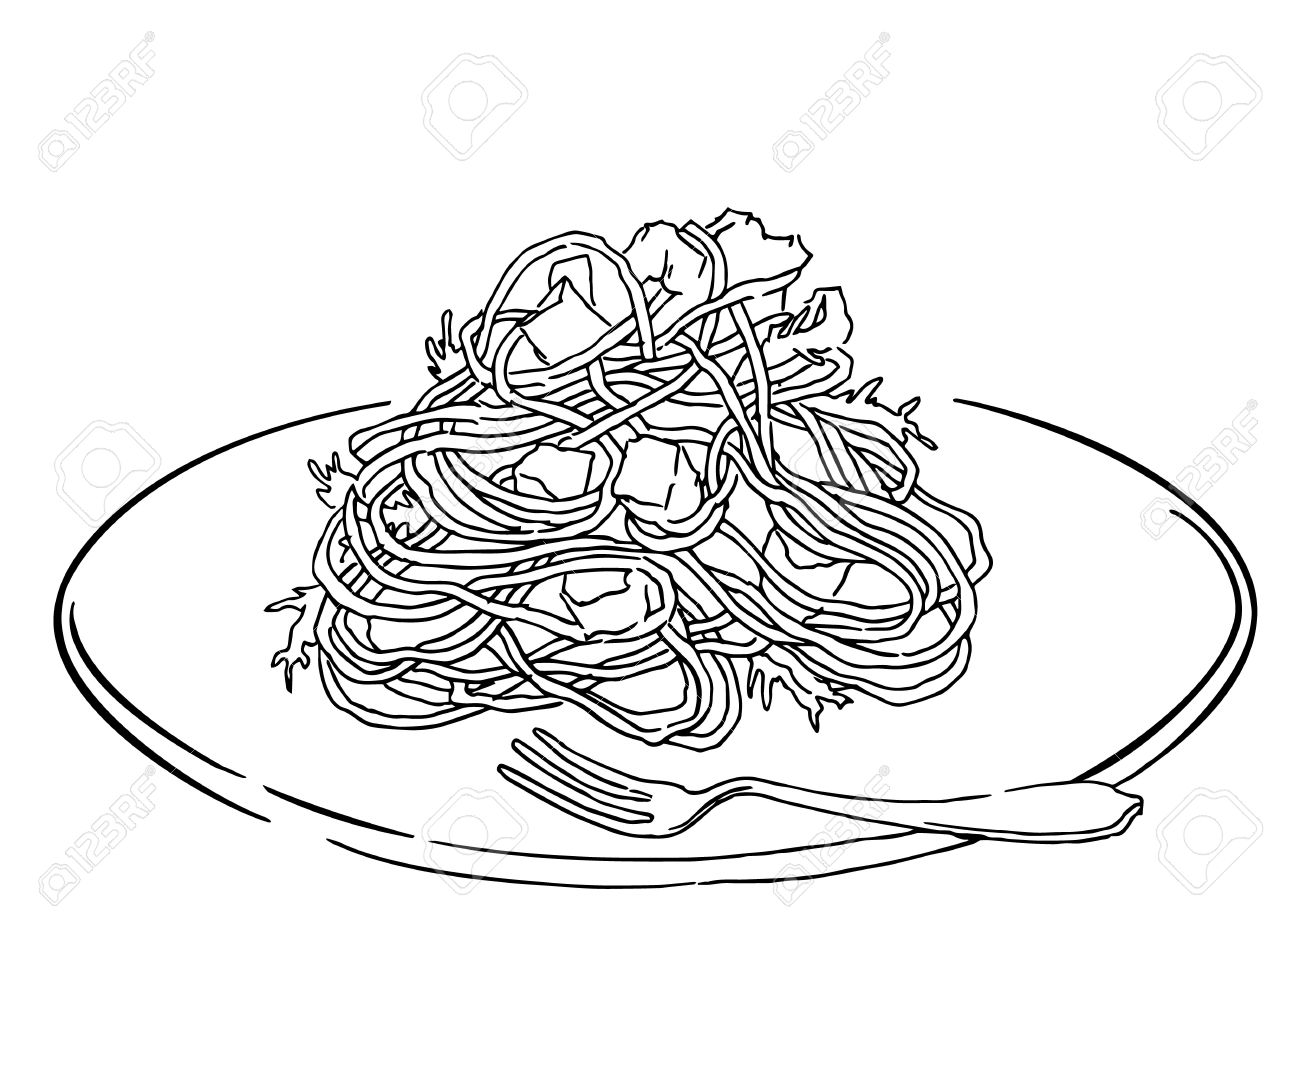 Line Art Food : Spaghetti food clipart black and white clipground